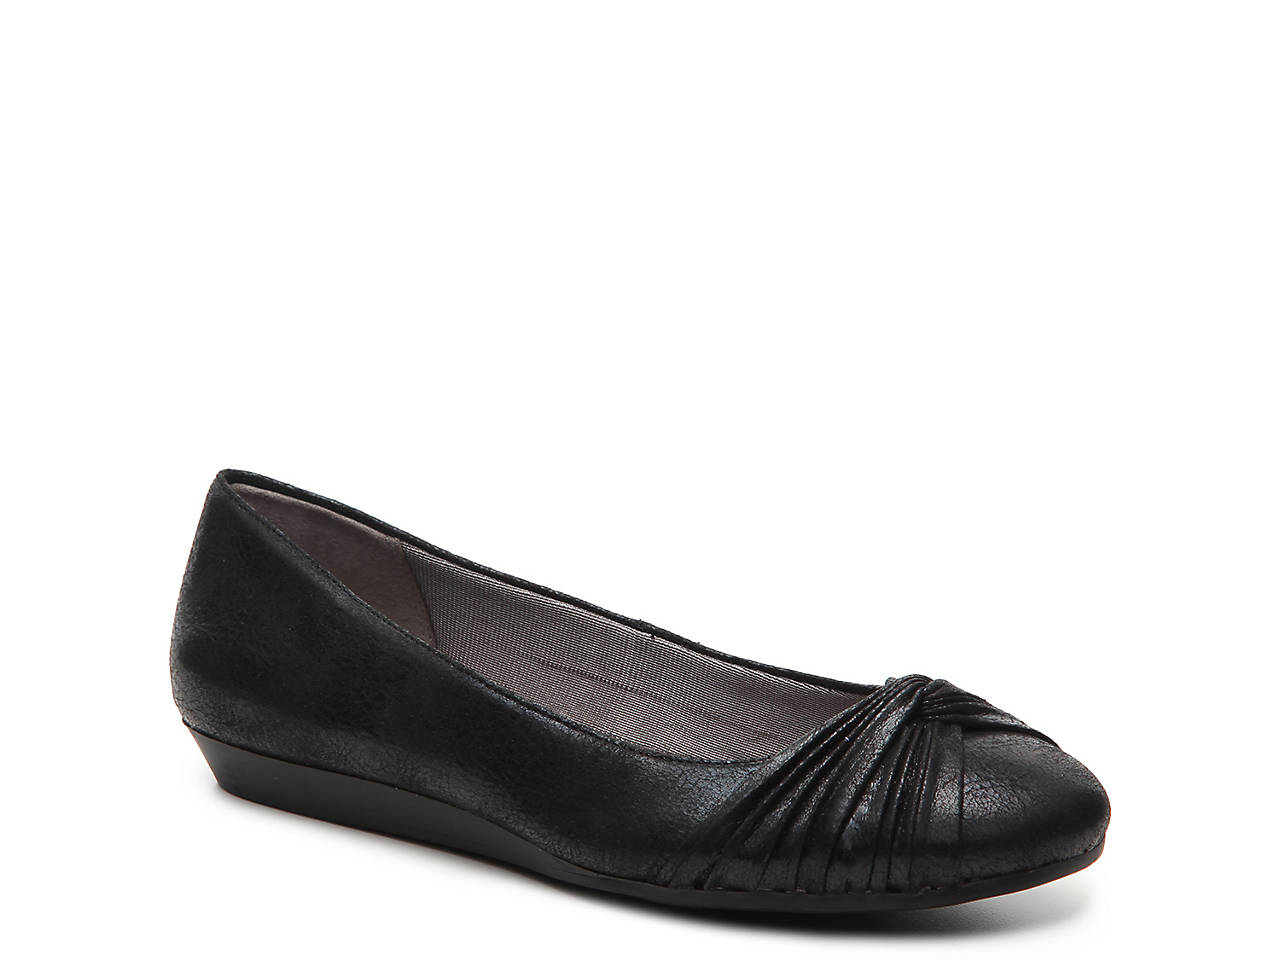 caa442e788b4 LifeStride Pretend Flat Women s Shoes